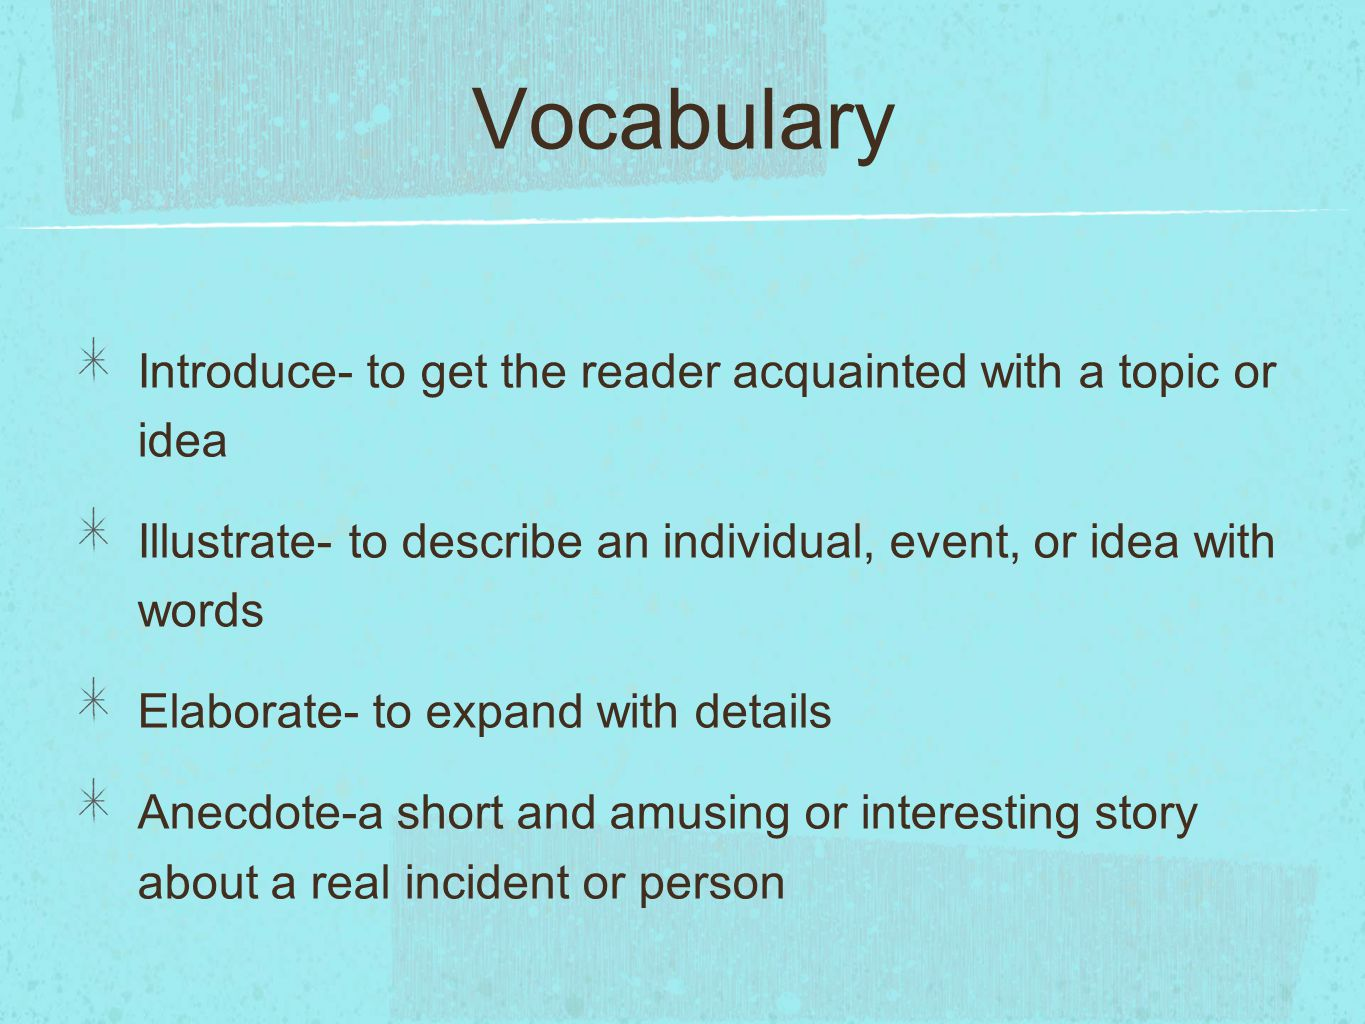 Big Ideas Author's introduce, illustrate and elaborate so that readers can understand an individual, event or idea.